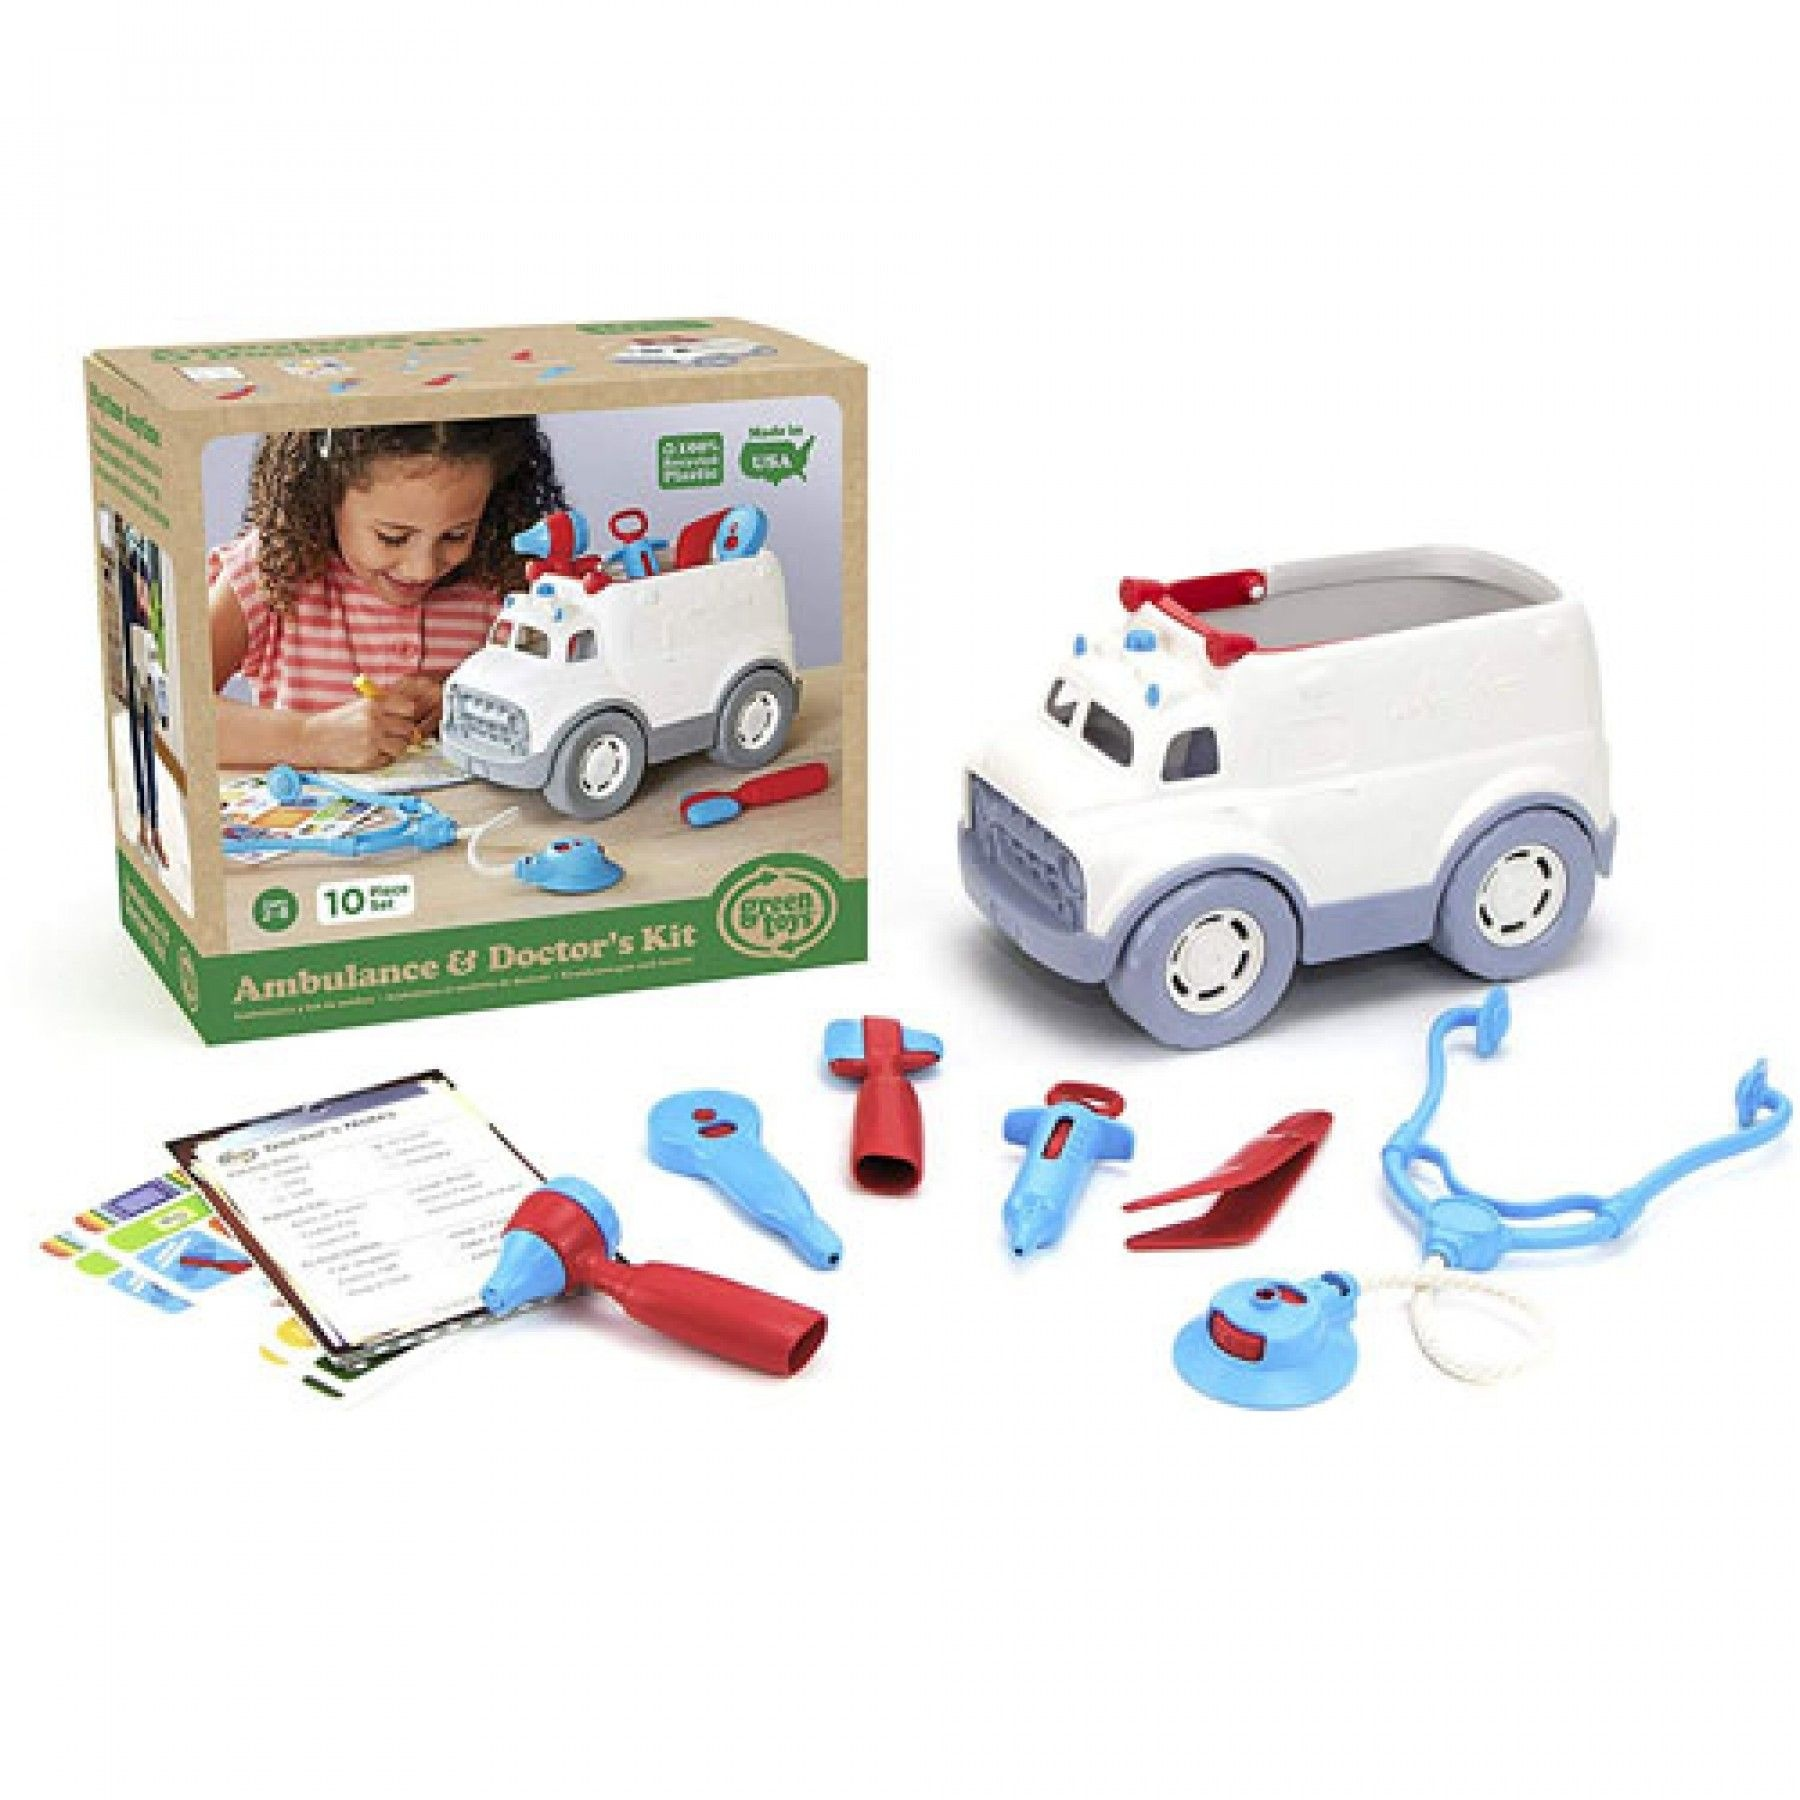 Ambulance and Doctor's kit-2